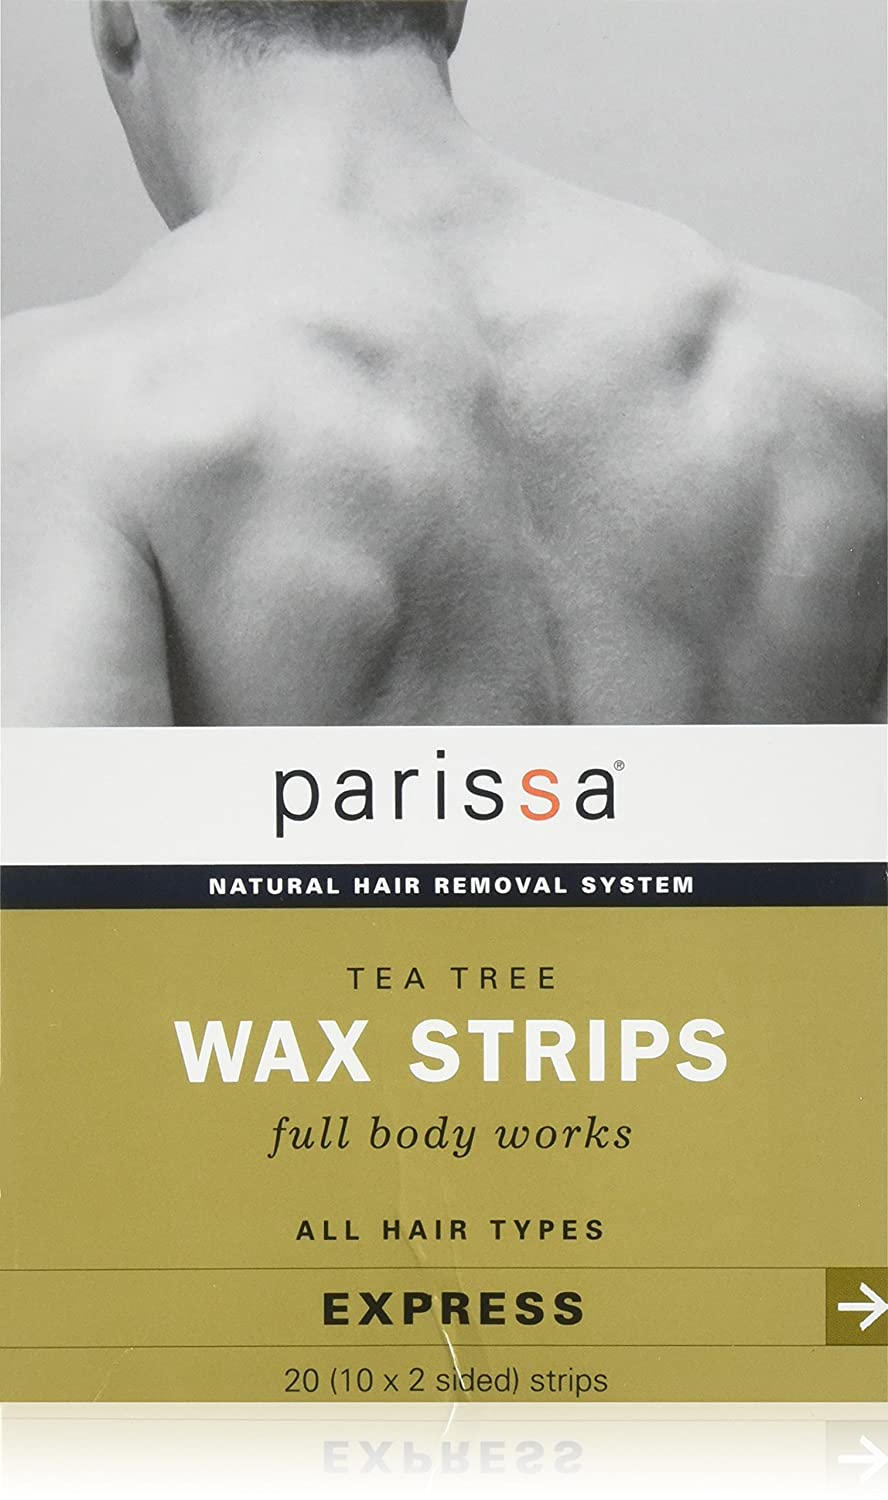 Parissa Men's Tea Tree Wax Strips 20 Strips by Parissa S0522094N